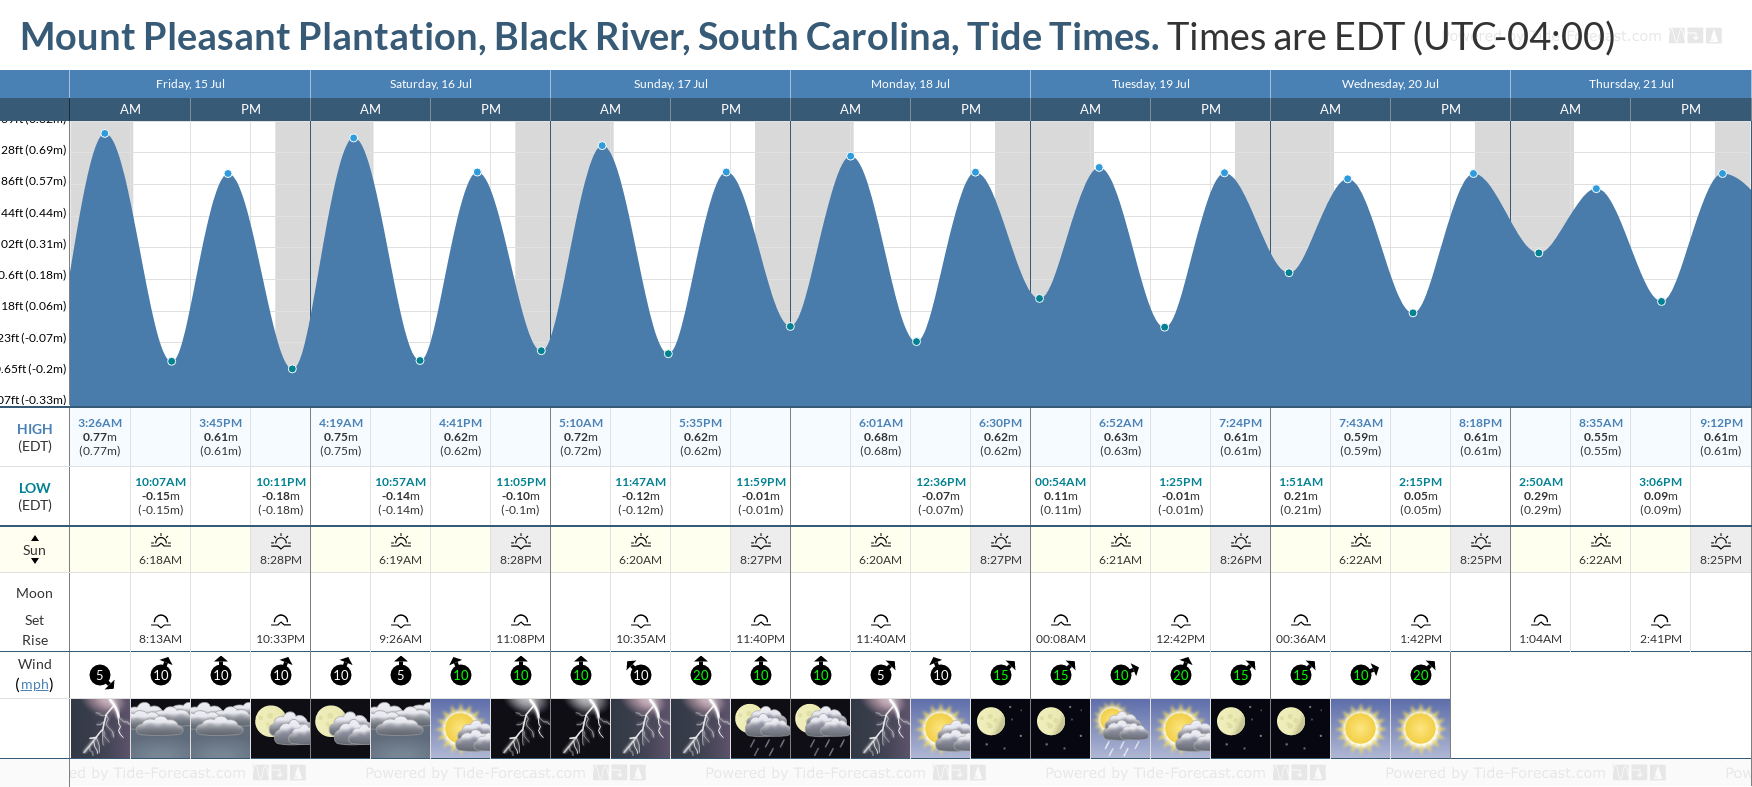 Mount Pleasant Plantation, Black River, South Carolina Tide Chart including high and low tide tide times for the next 7 days